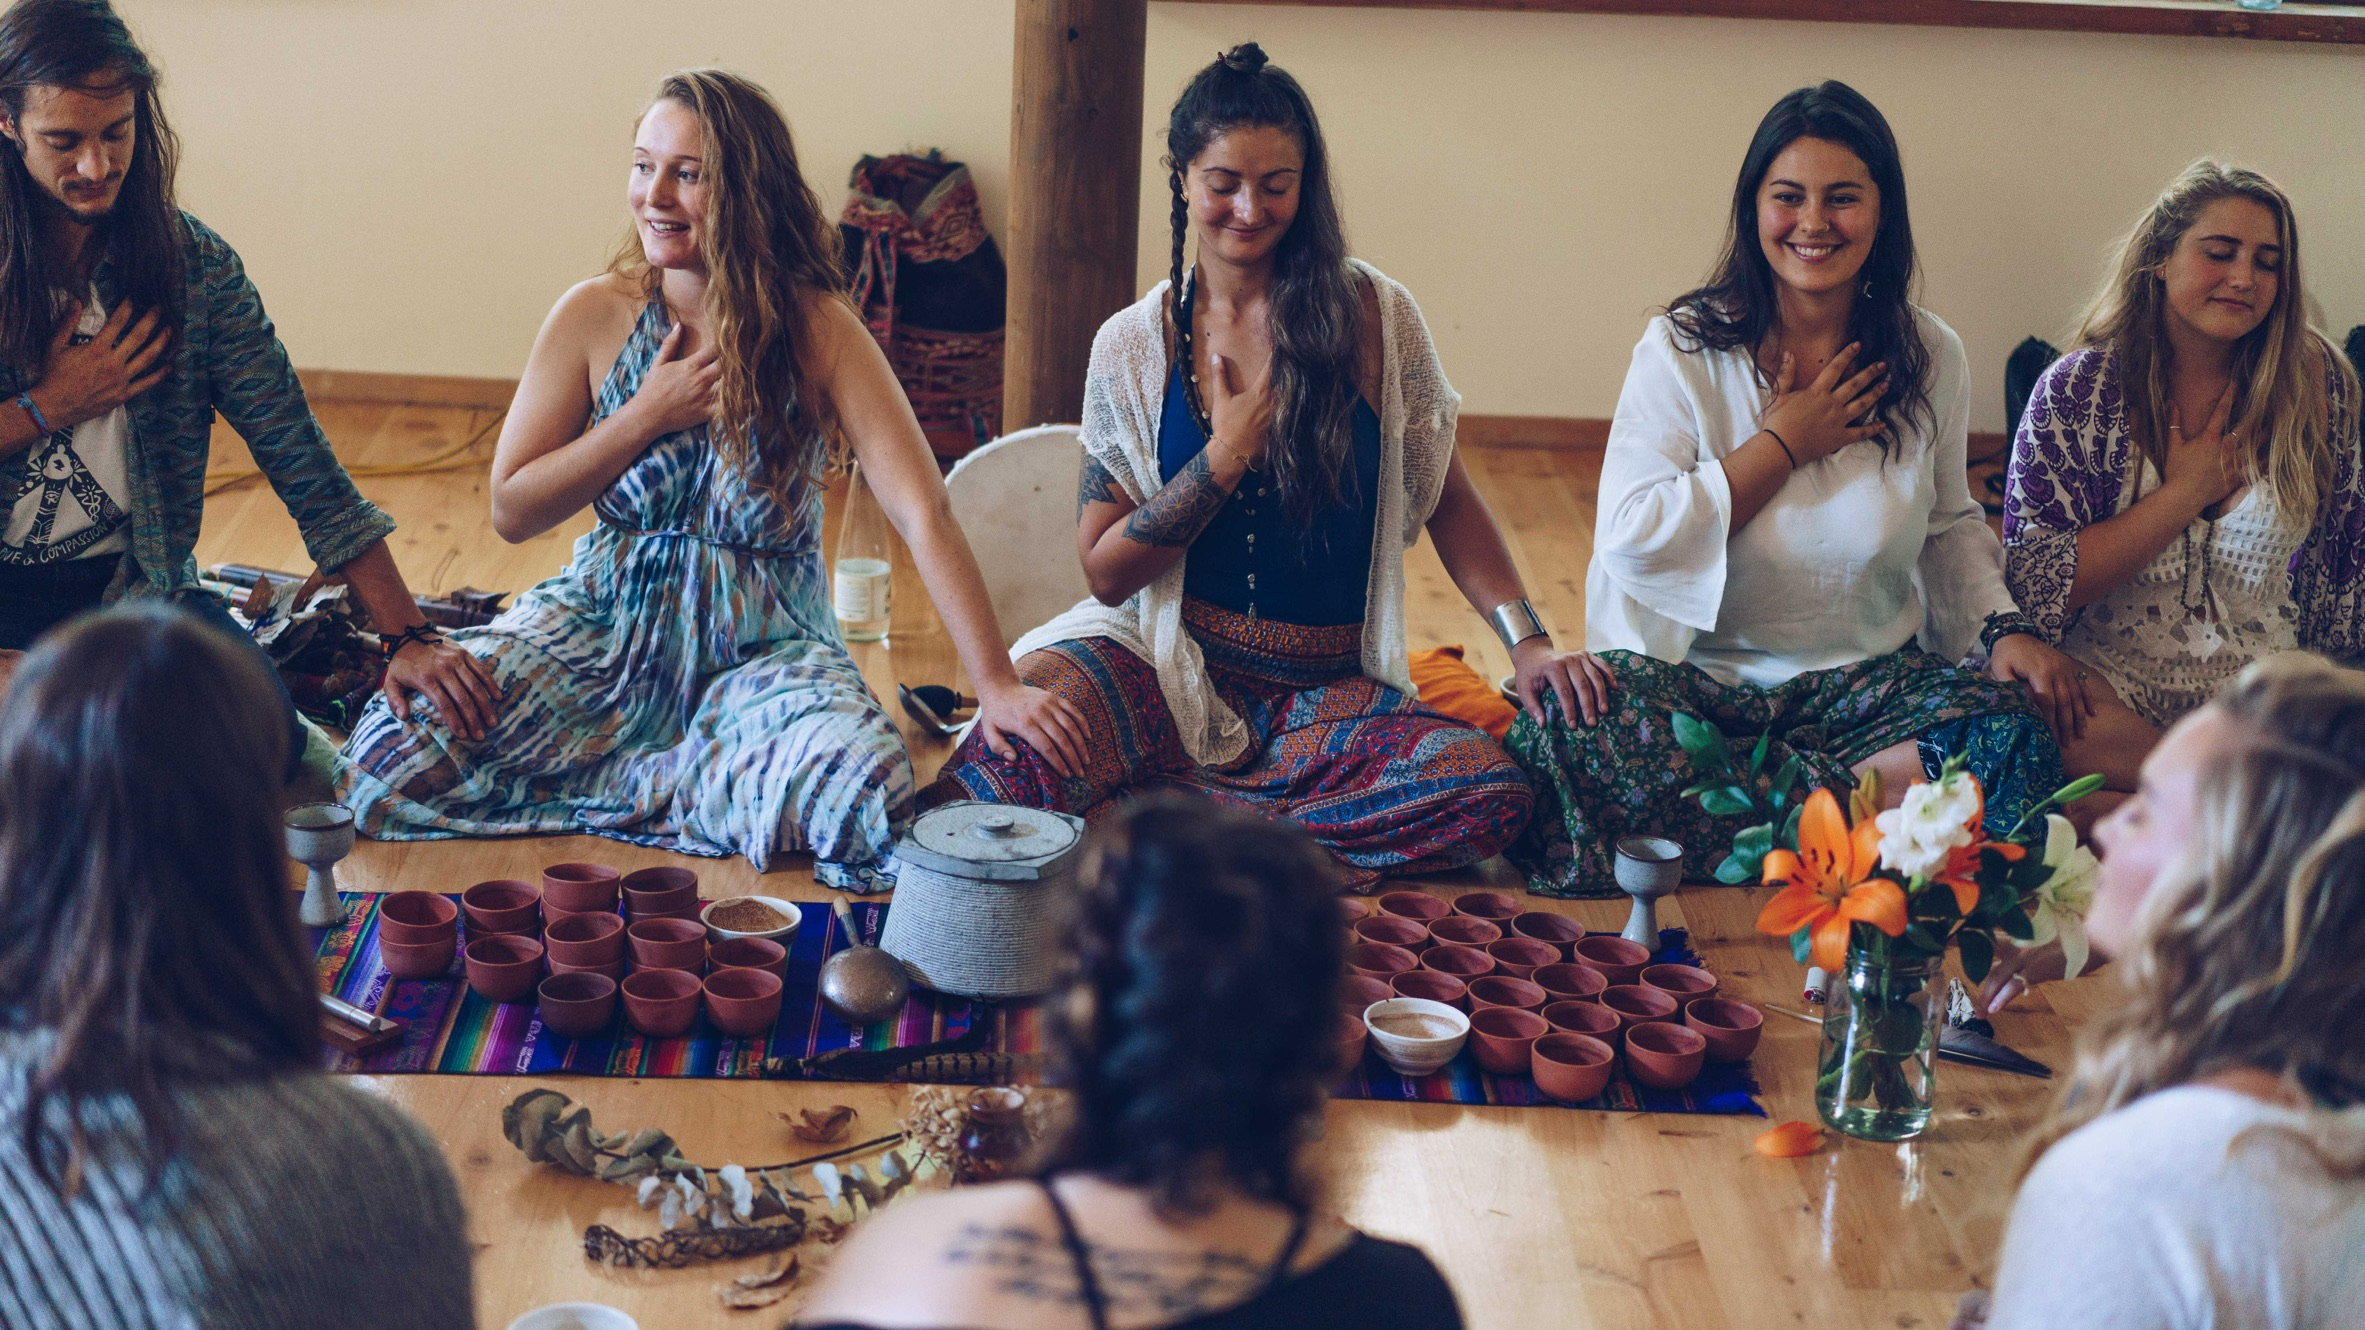 http://littleyogafestival.com/events/cacao-ceremony/